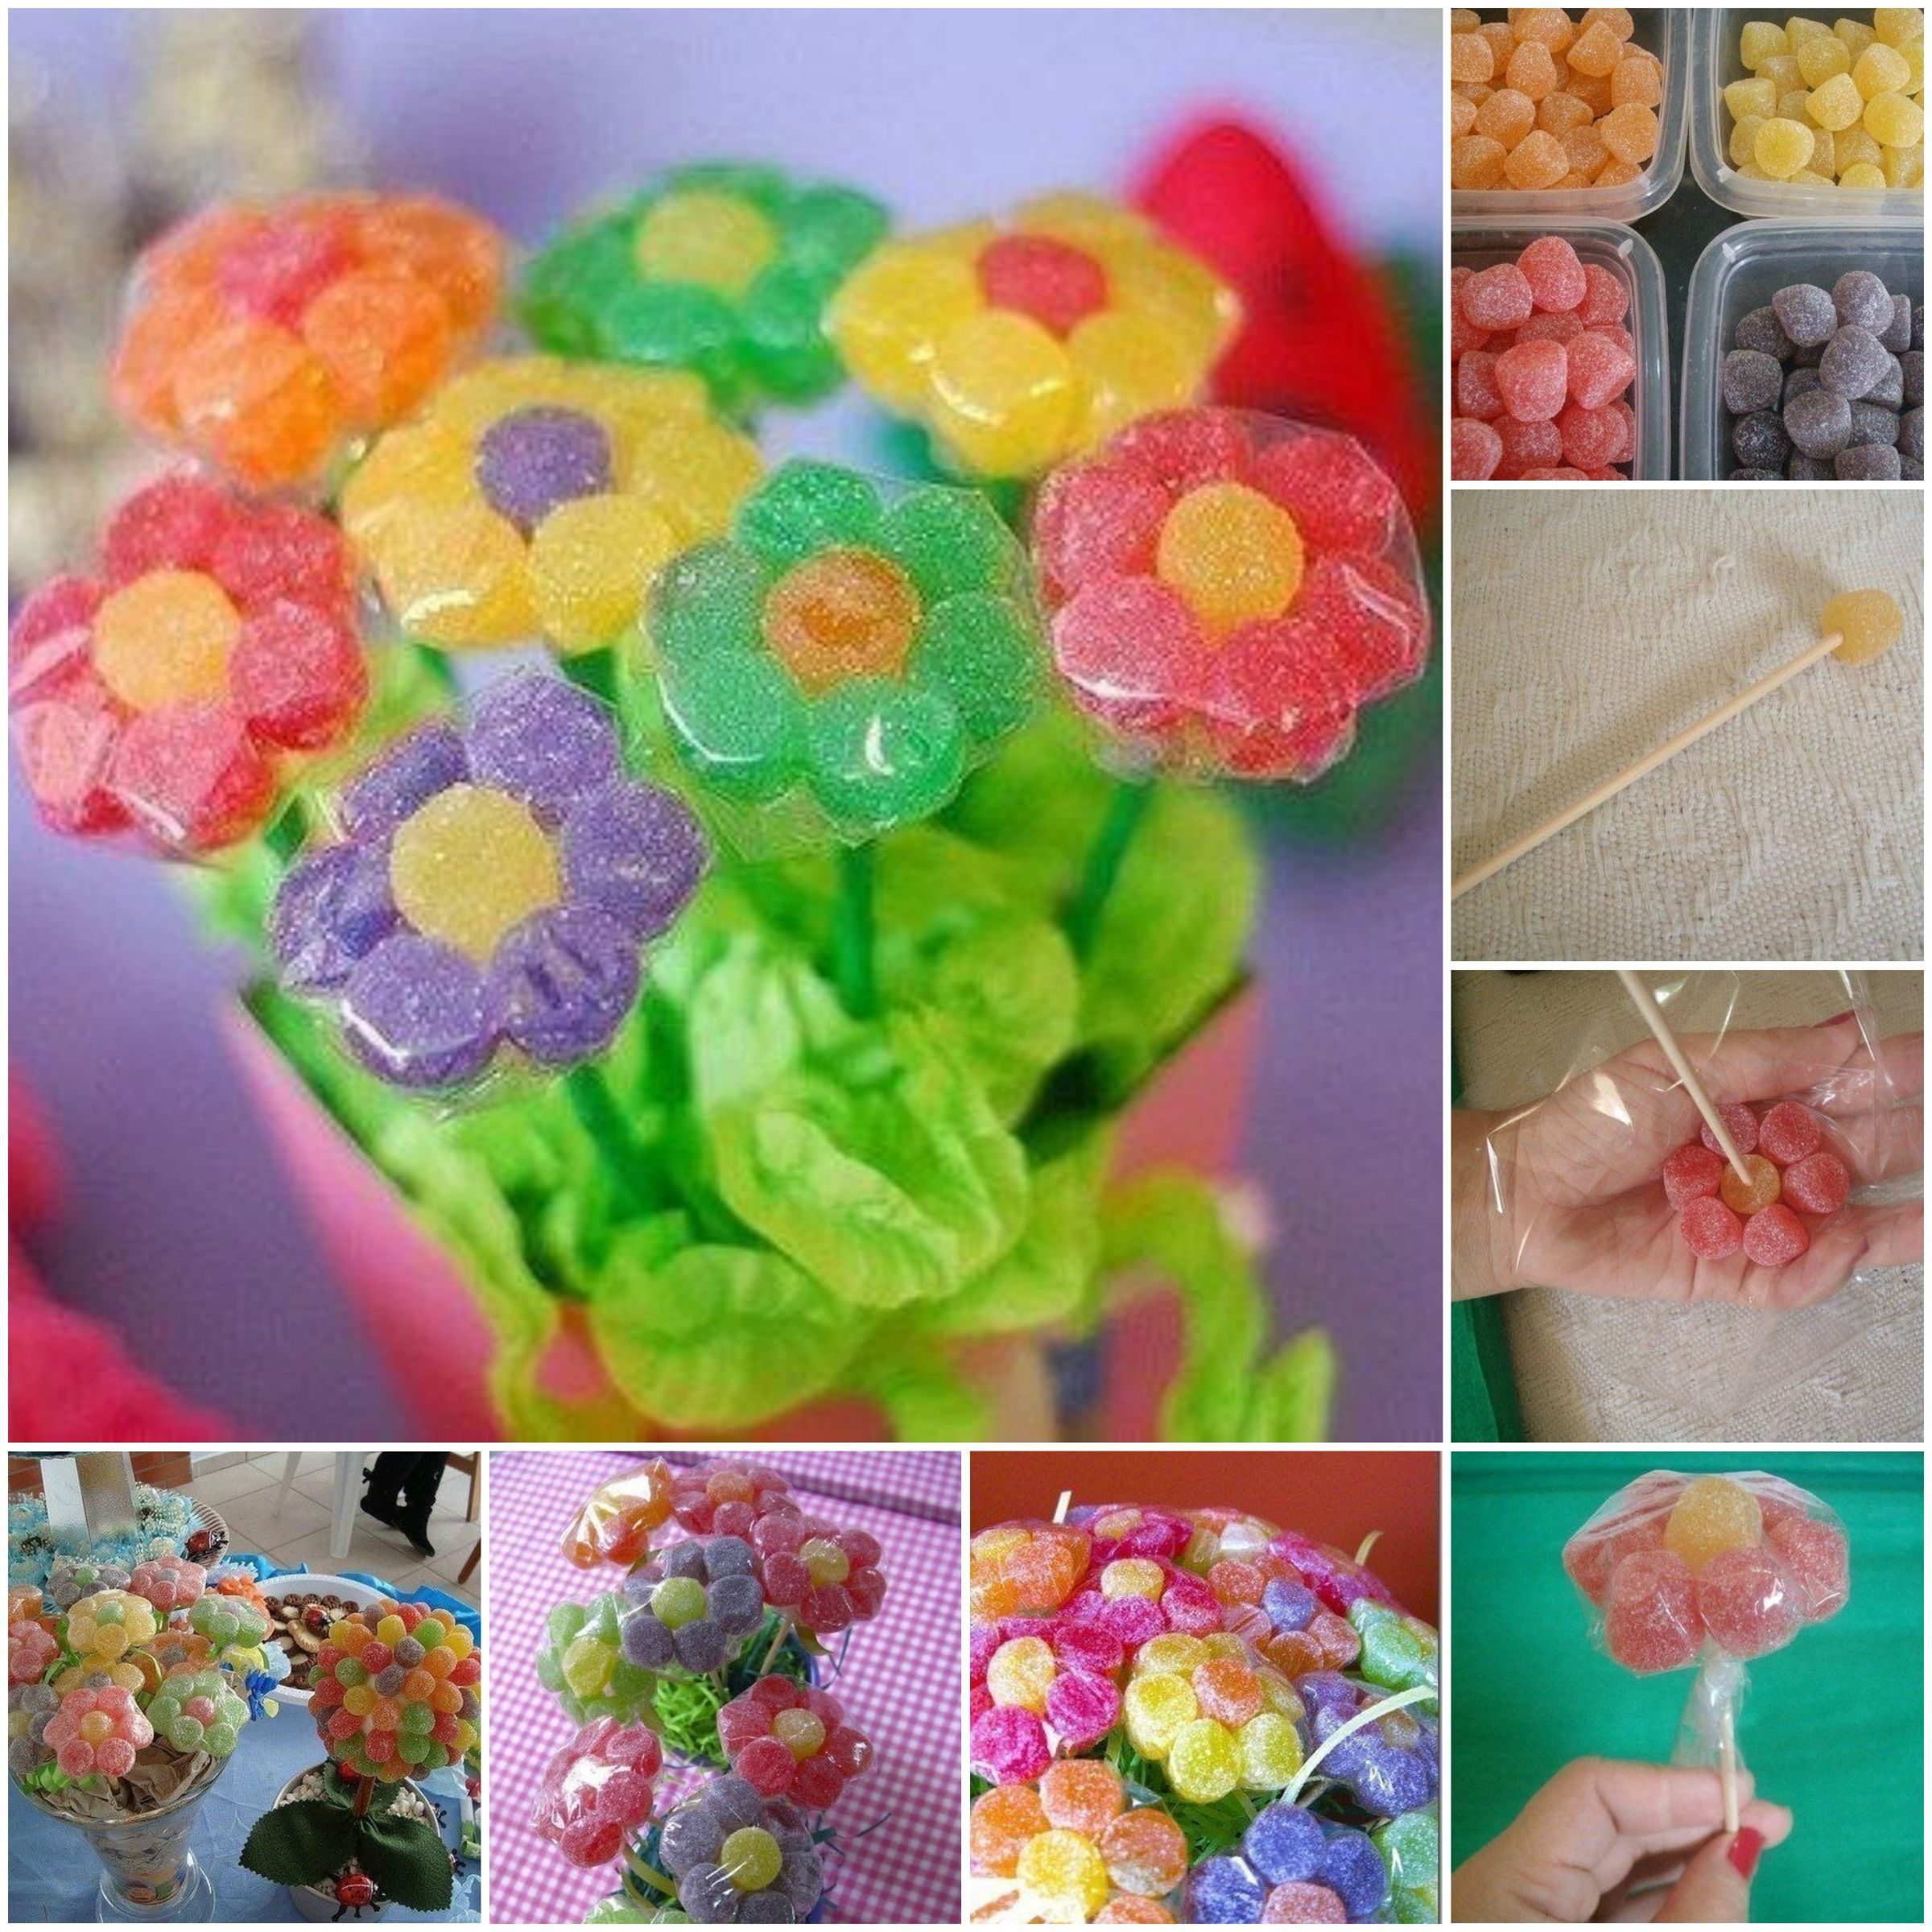 Diy gummy candy flowers candy flowers flowers and facebook diy gummy candy flowers izmirmasajfo Choice Image